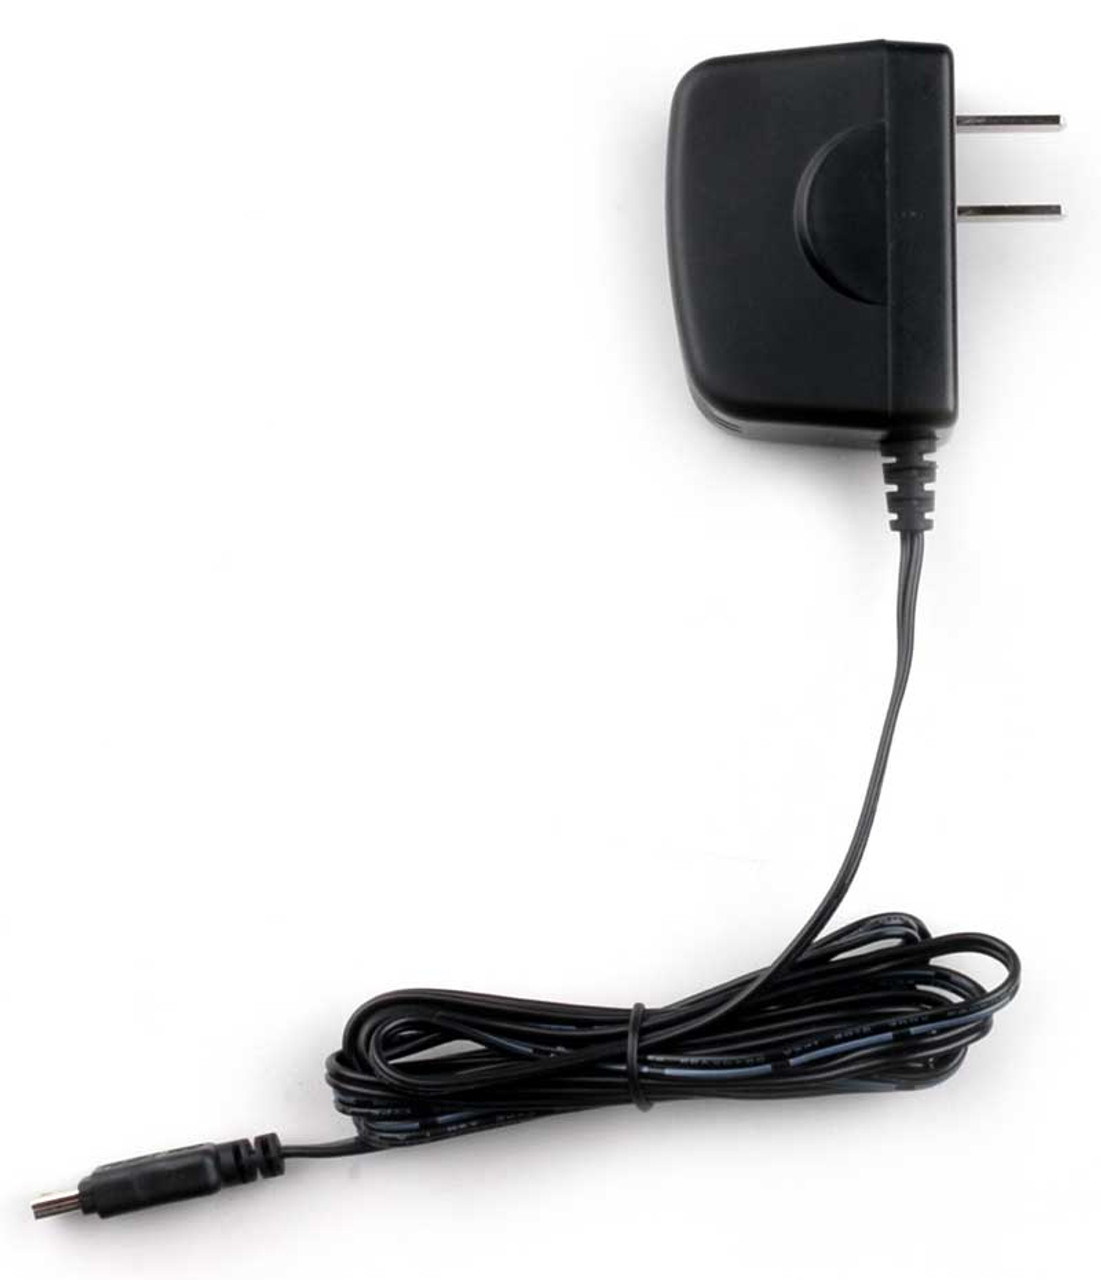 Hytera PS0602 US 120 Volt Wall Charger for Hytera TC-320 Series Two Way Radios